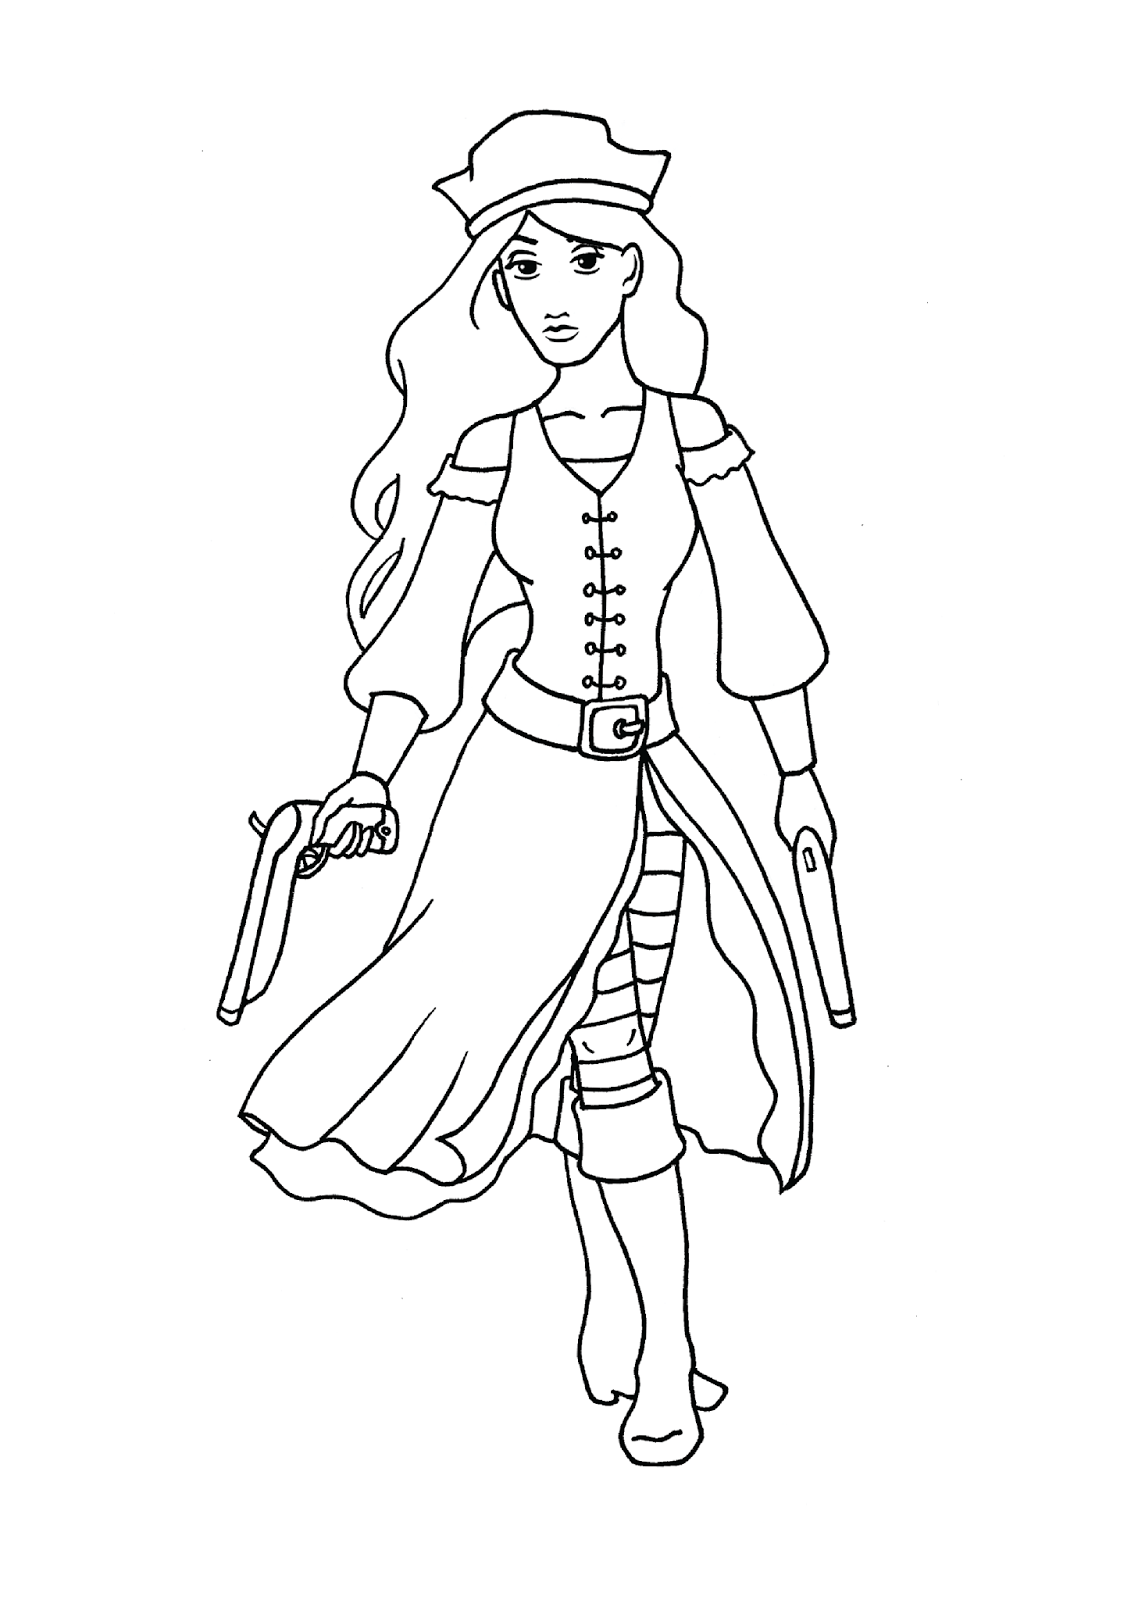 merryprintables: Coloring Pages for Kids